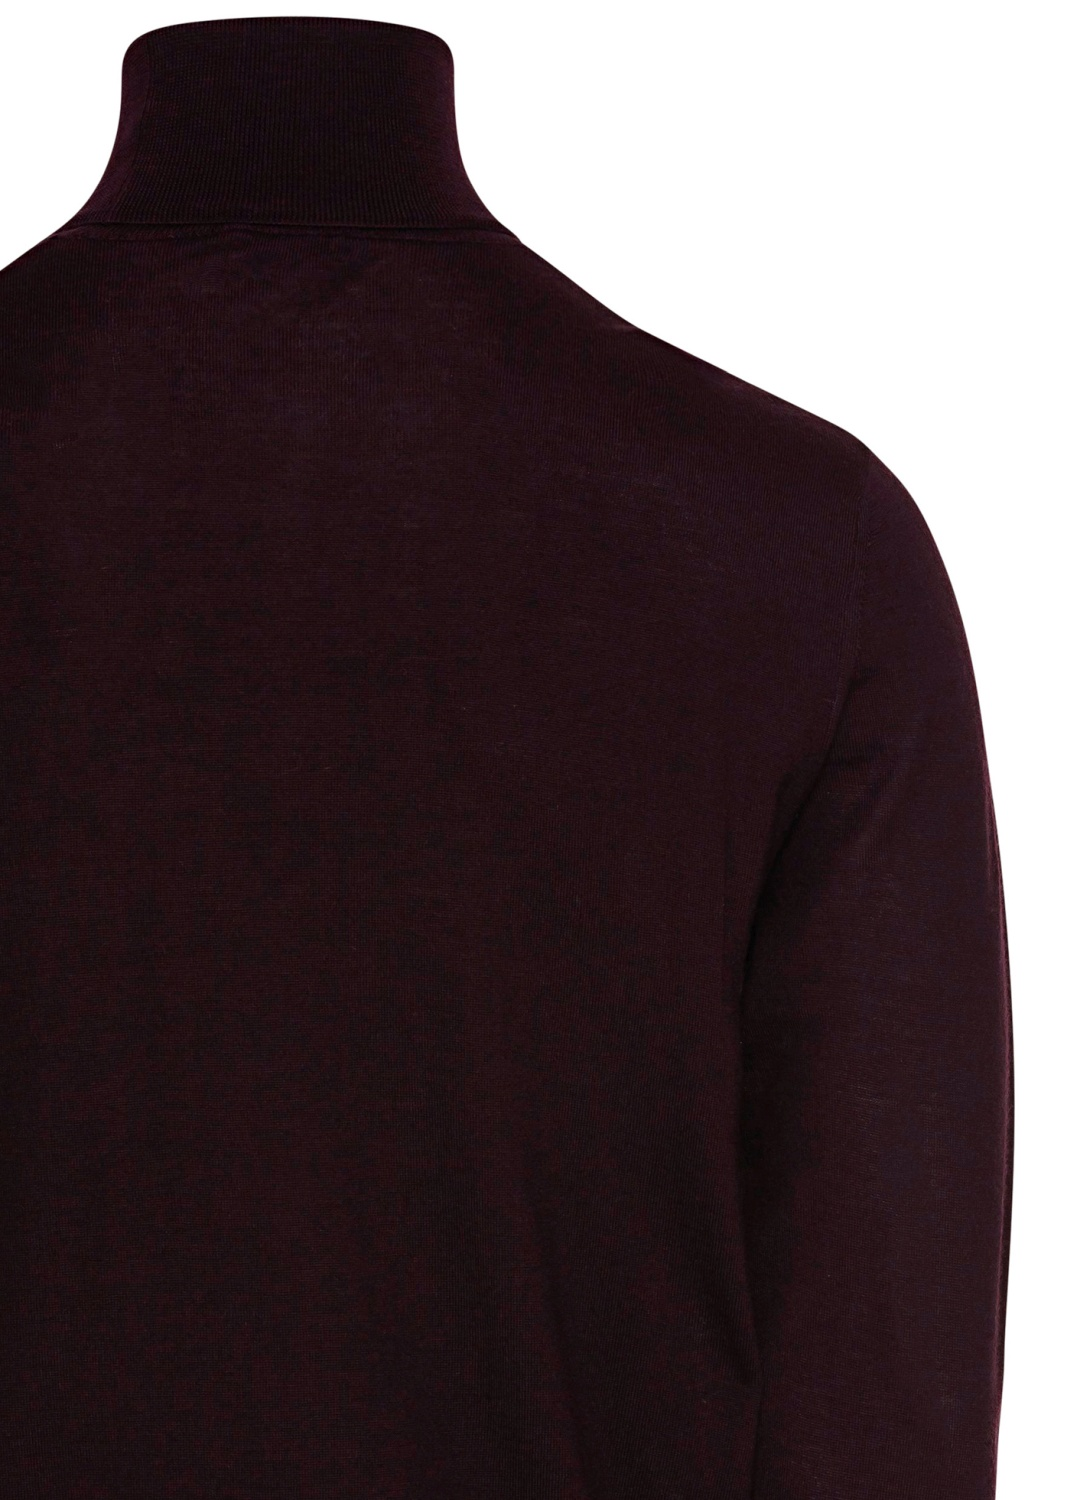 MIGUEL 1700 M.K.SWEATER image number 3